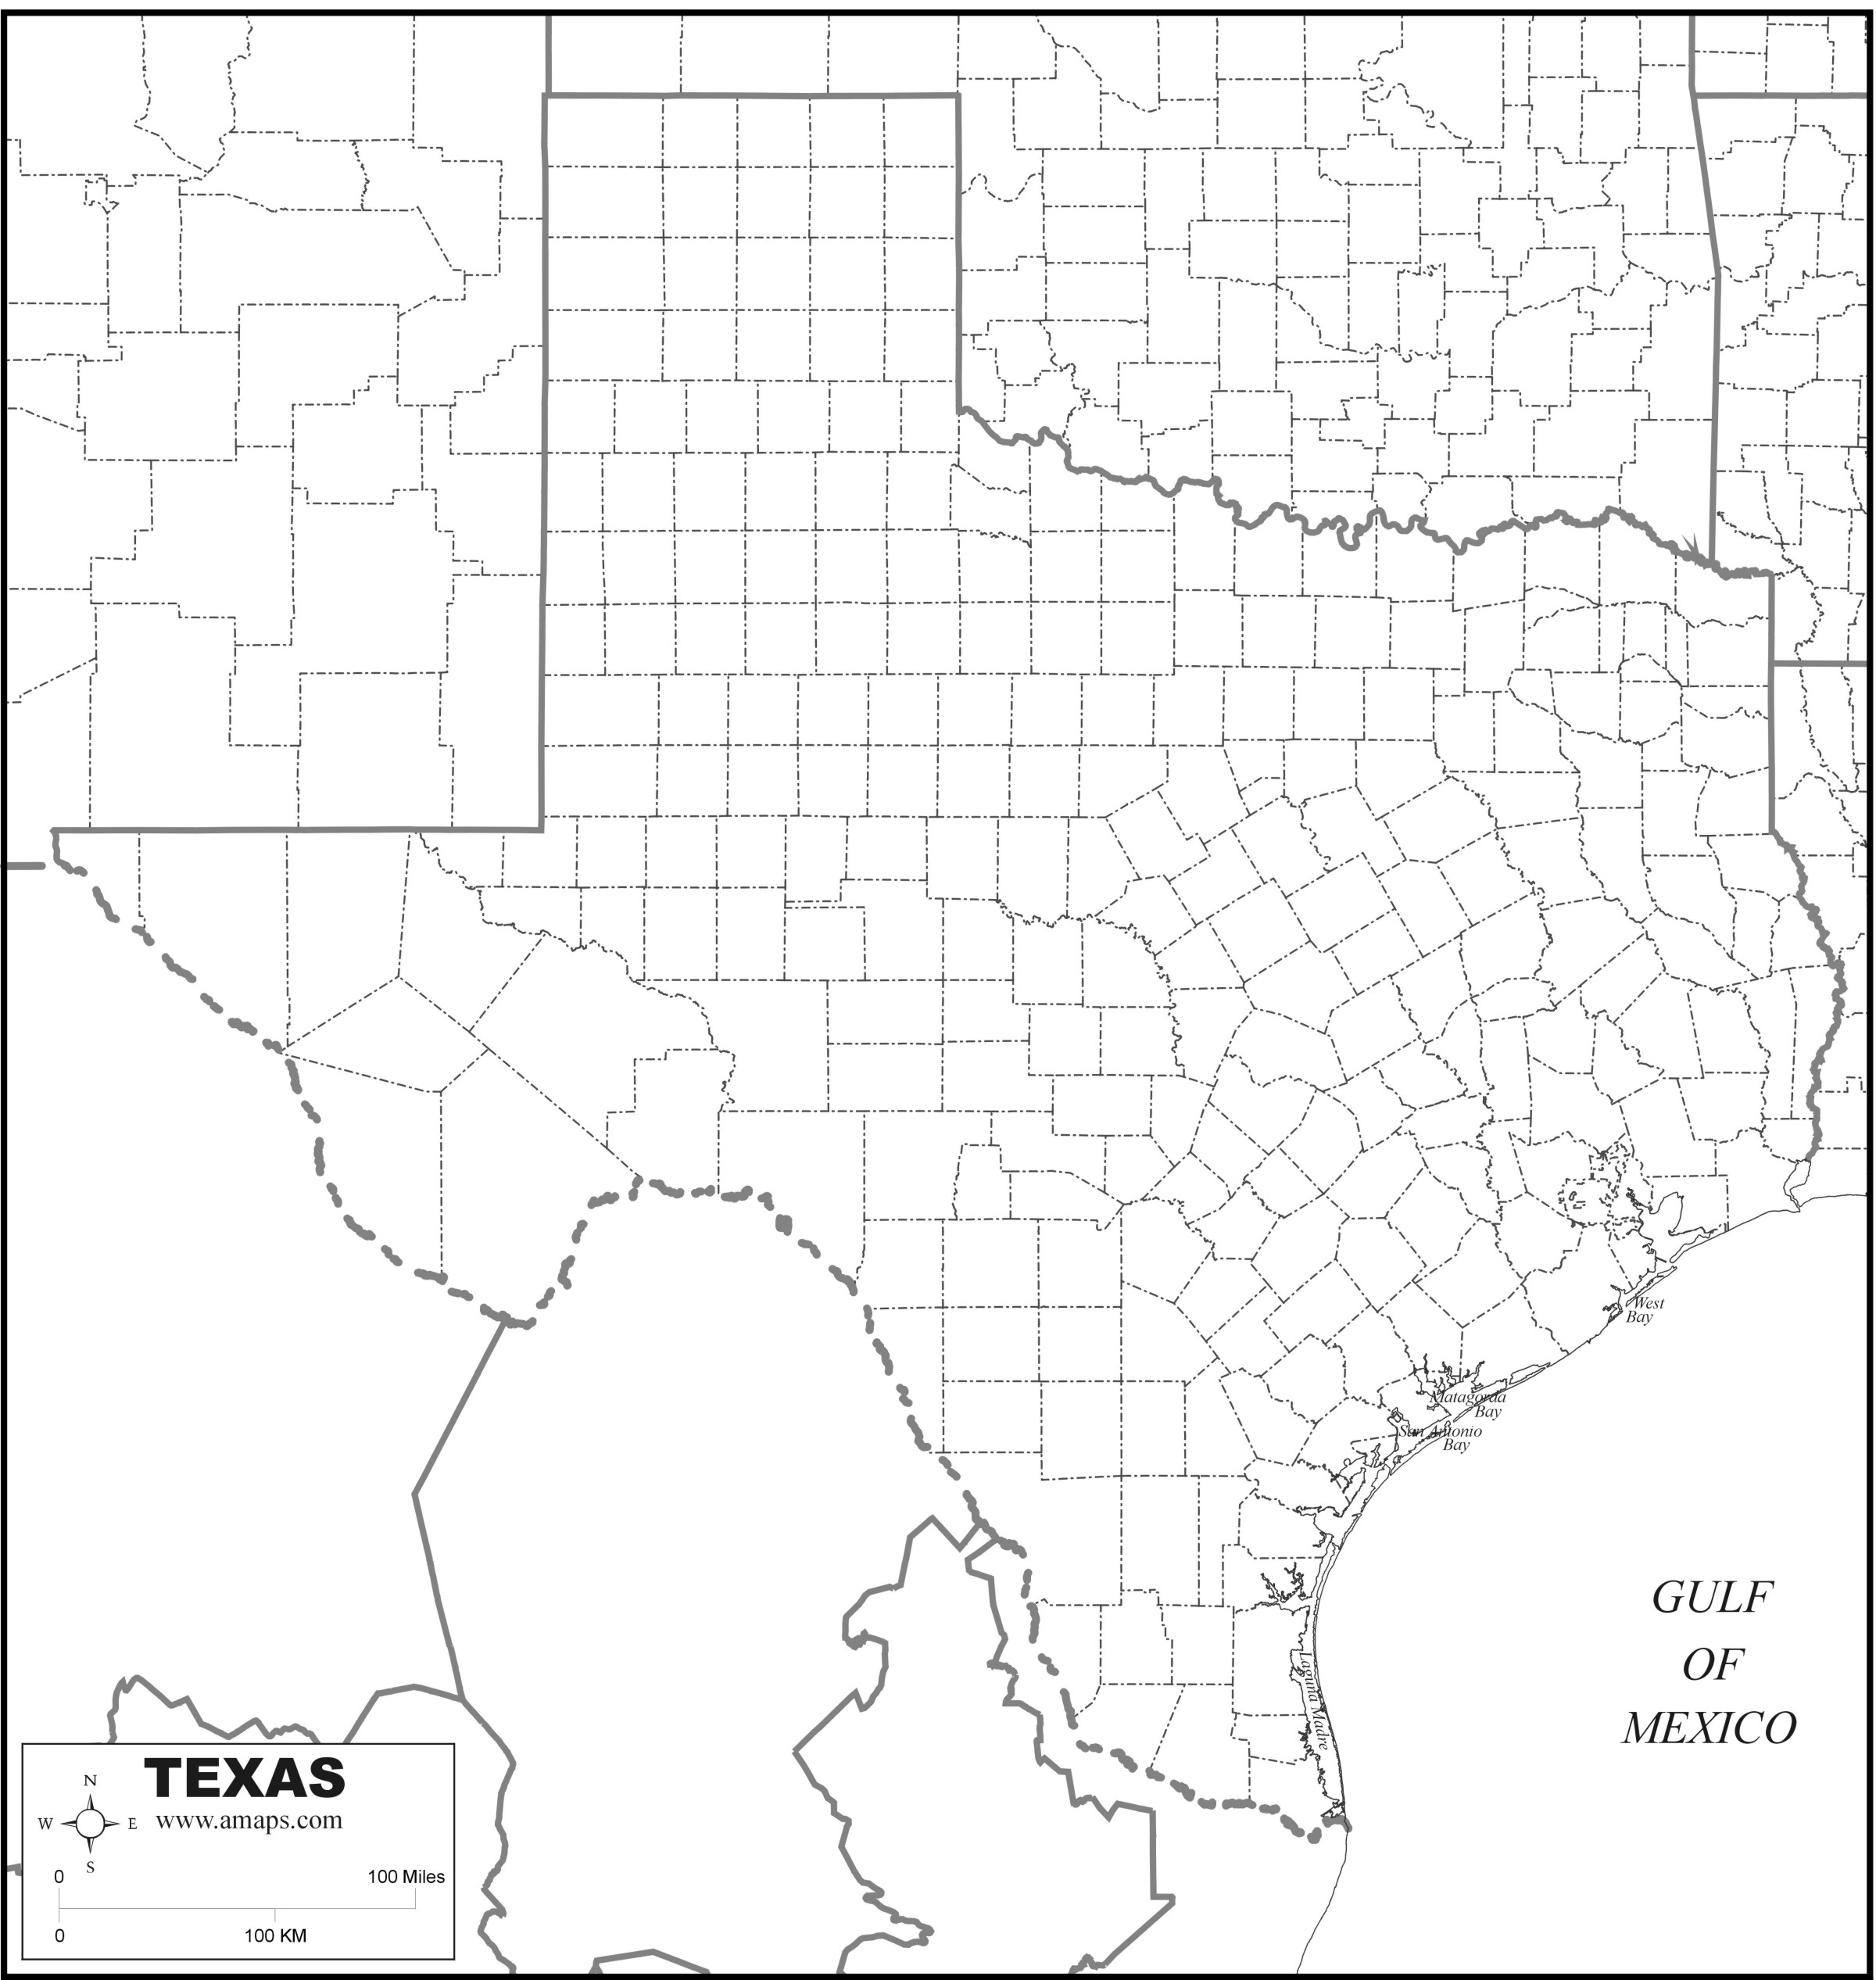 Texas map drawing at getdrawings free for personal use texas 2400x2533 free map of texas gumiabroncs Image collections